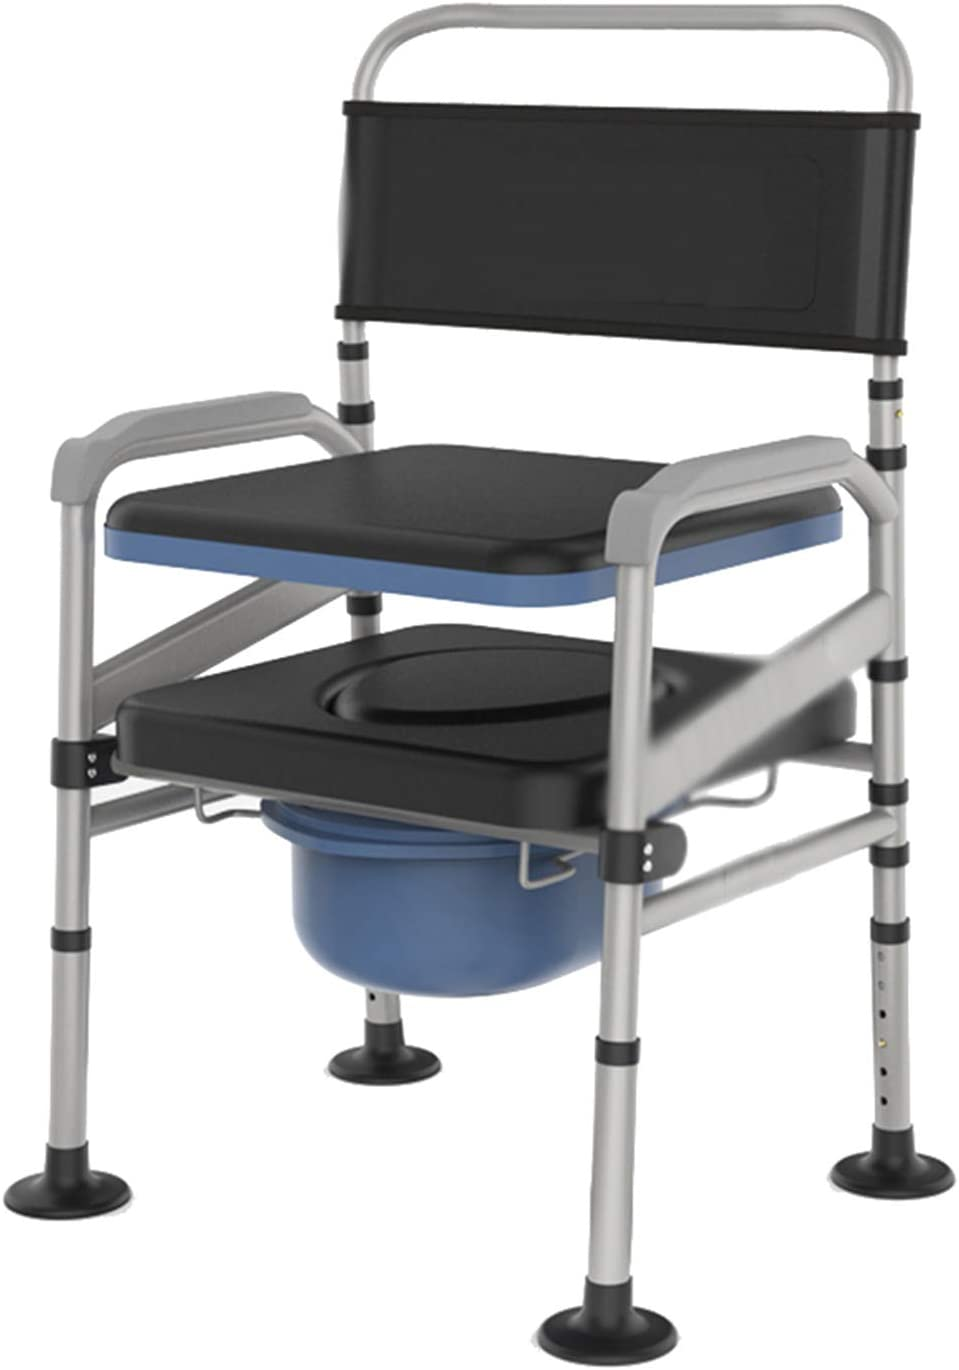 Portable Bedside Columbus Mall Max 64% OFF Commode Heavy Duty Elderly Chair Shower F for